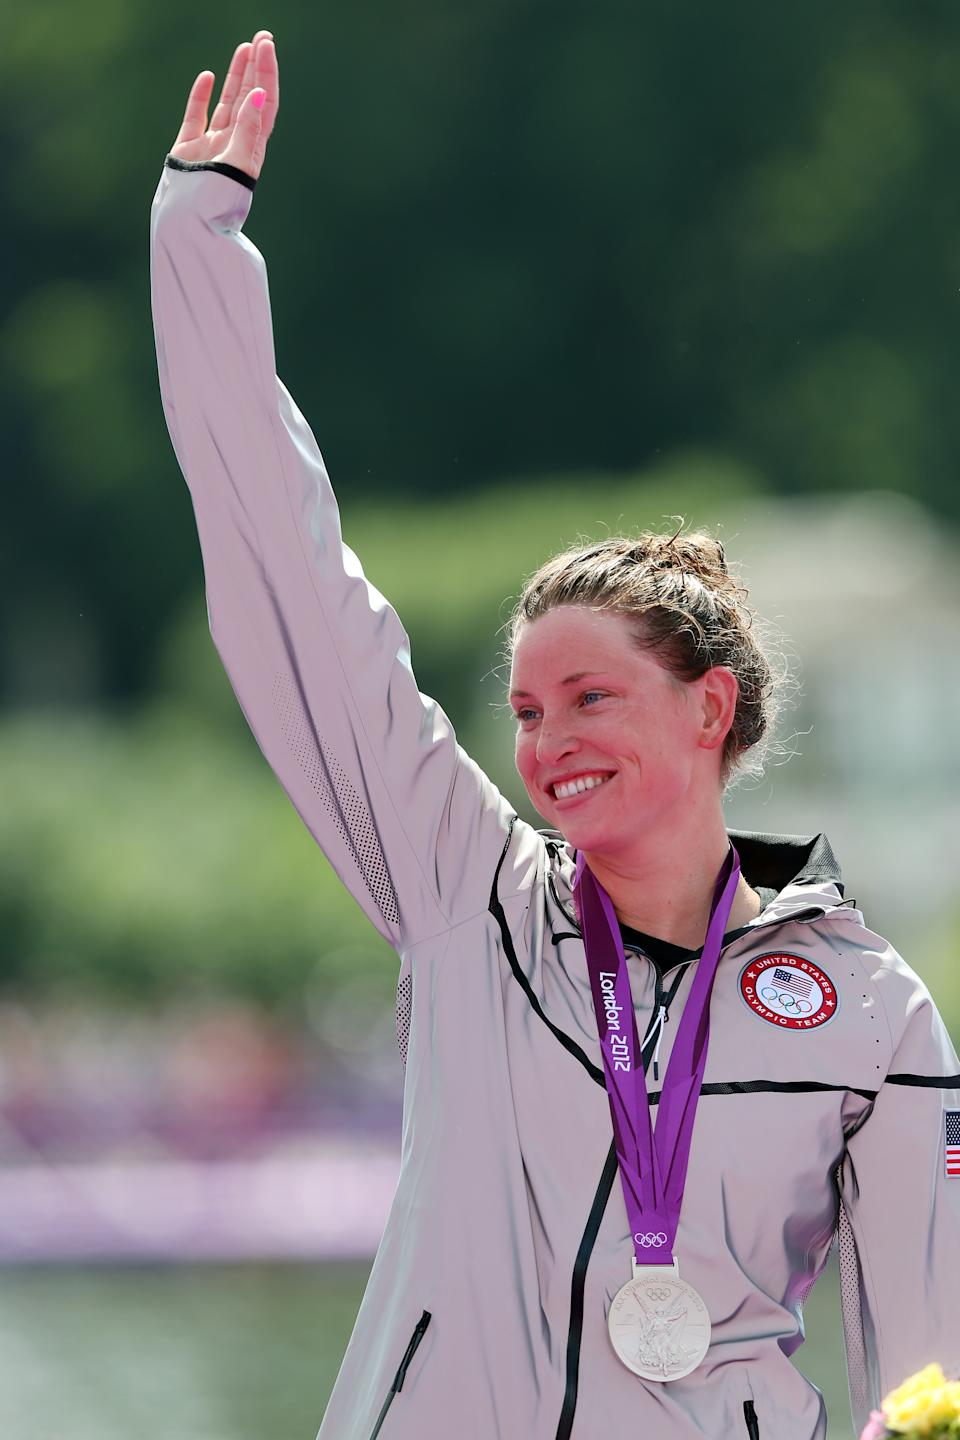 Silver medalist <span>Haley Anderson</span> of the United States celebrates on the podium during the medal ceremony for the Women's Marathon 10km Swimming at Hyde Park on August 9, 2012 in London, England. (Getty Images)